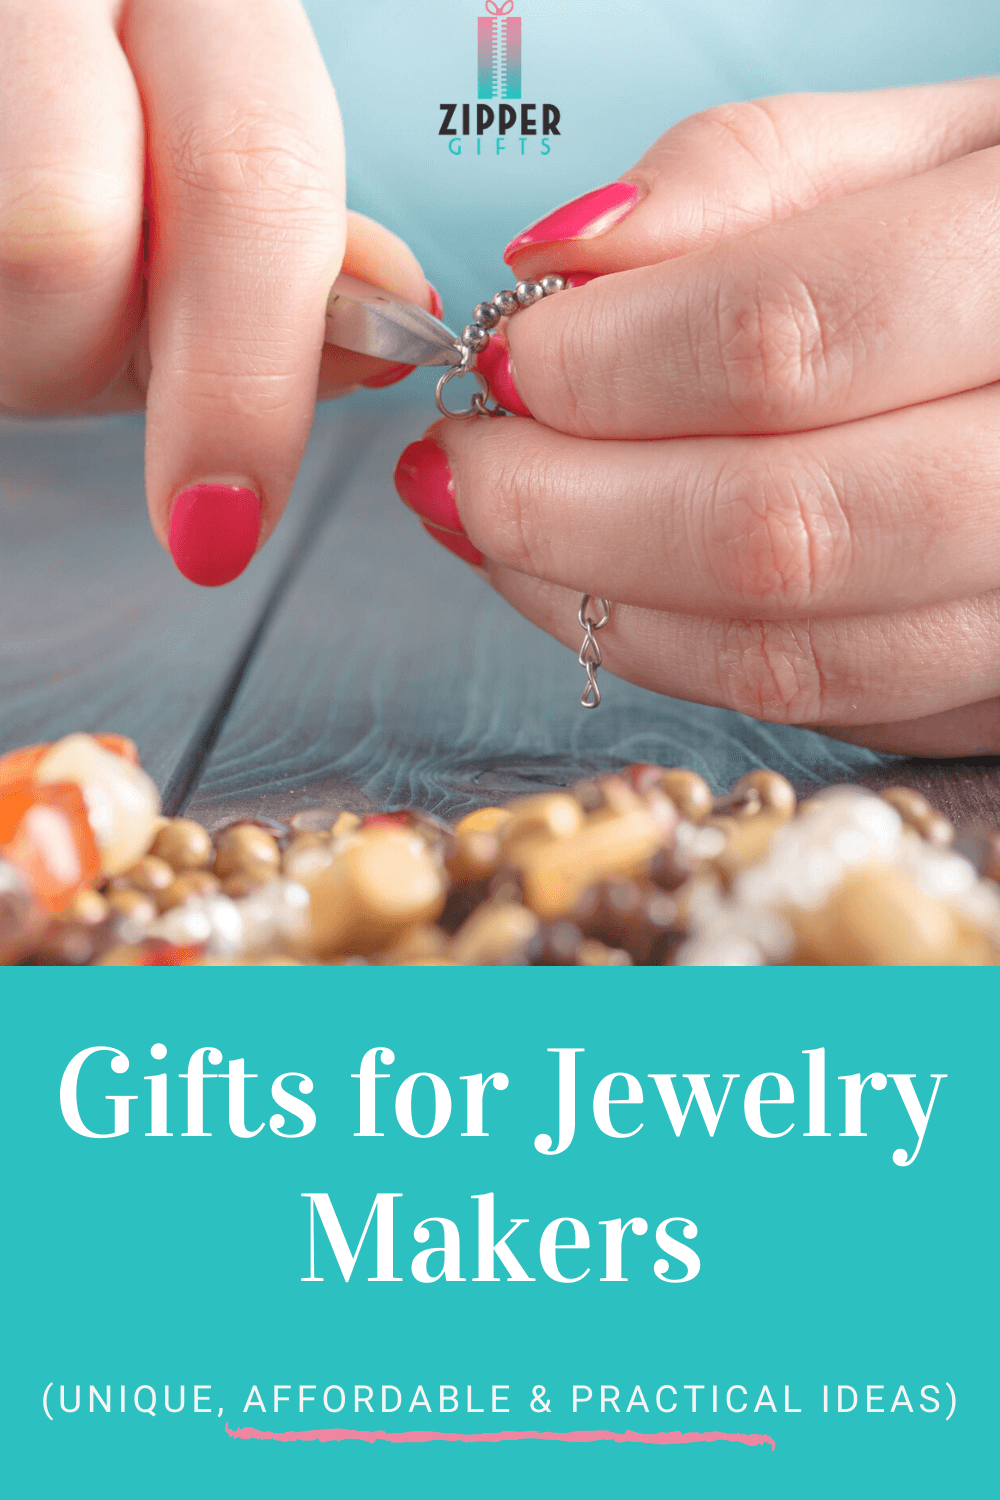 Gifts For Jewelry Makers (unique, Affordable & Practical Ideas)